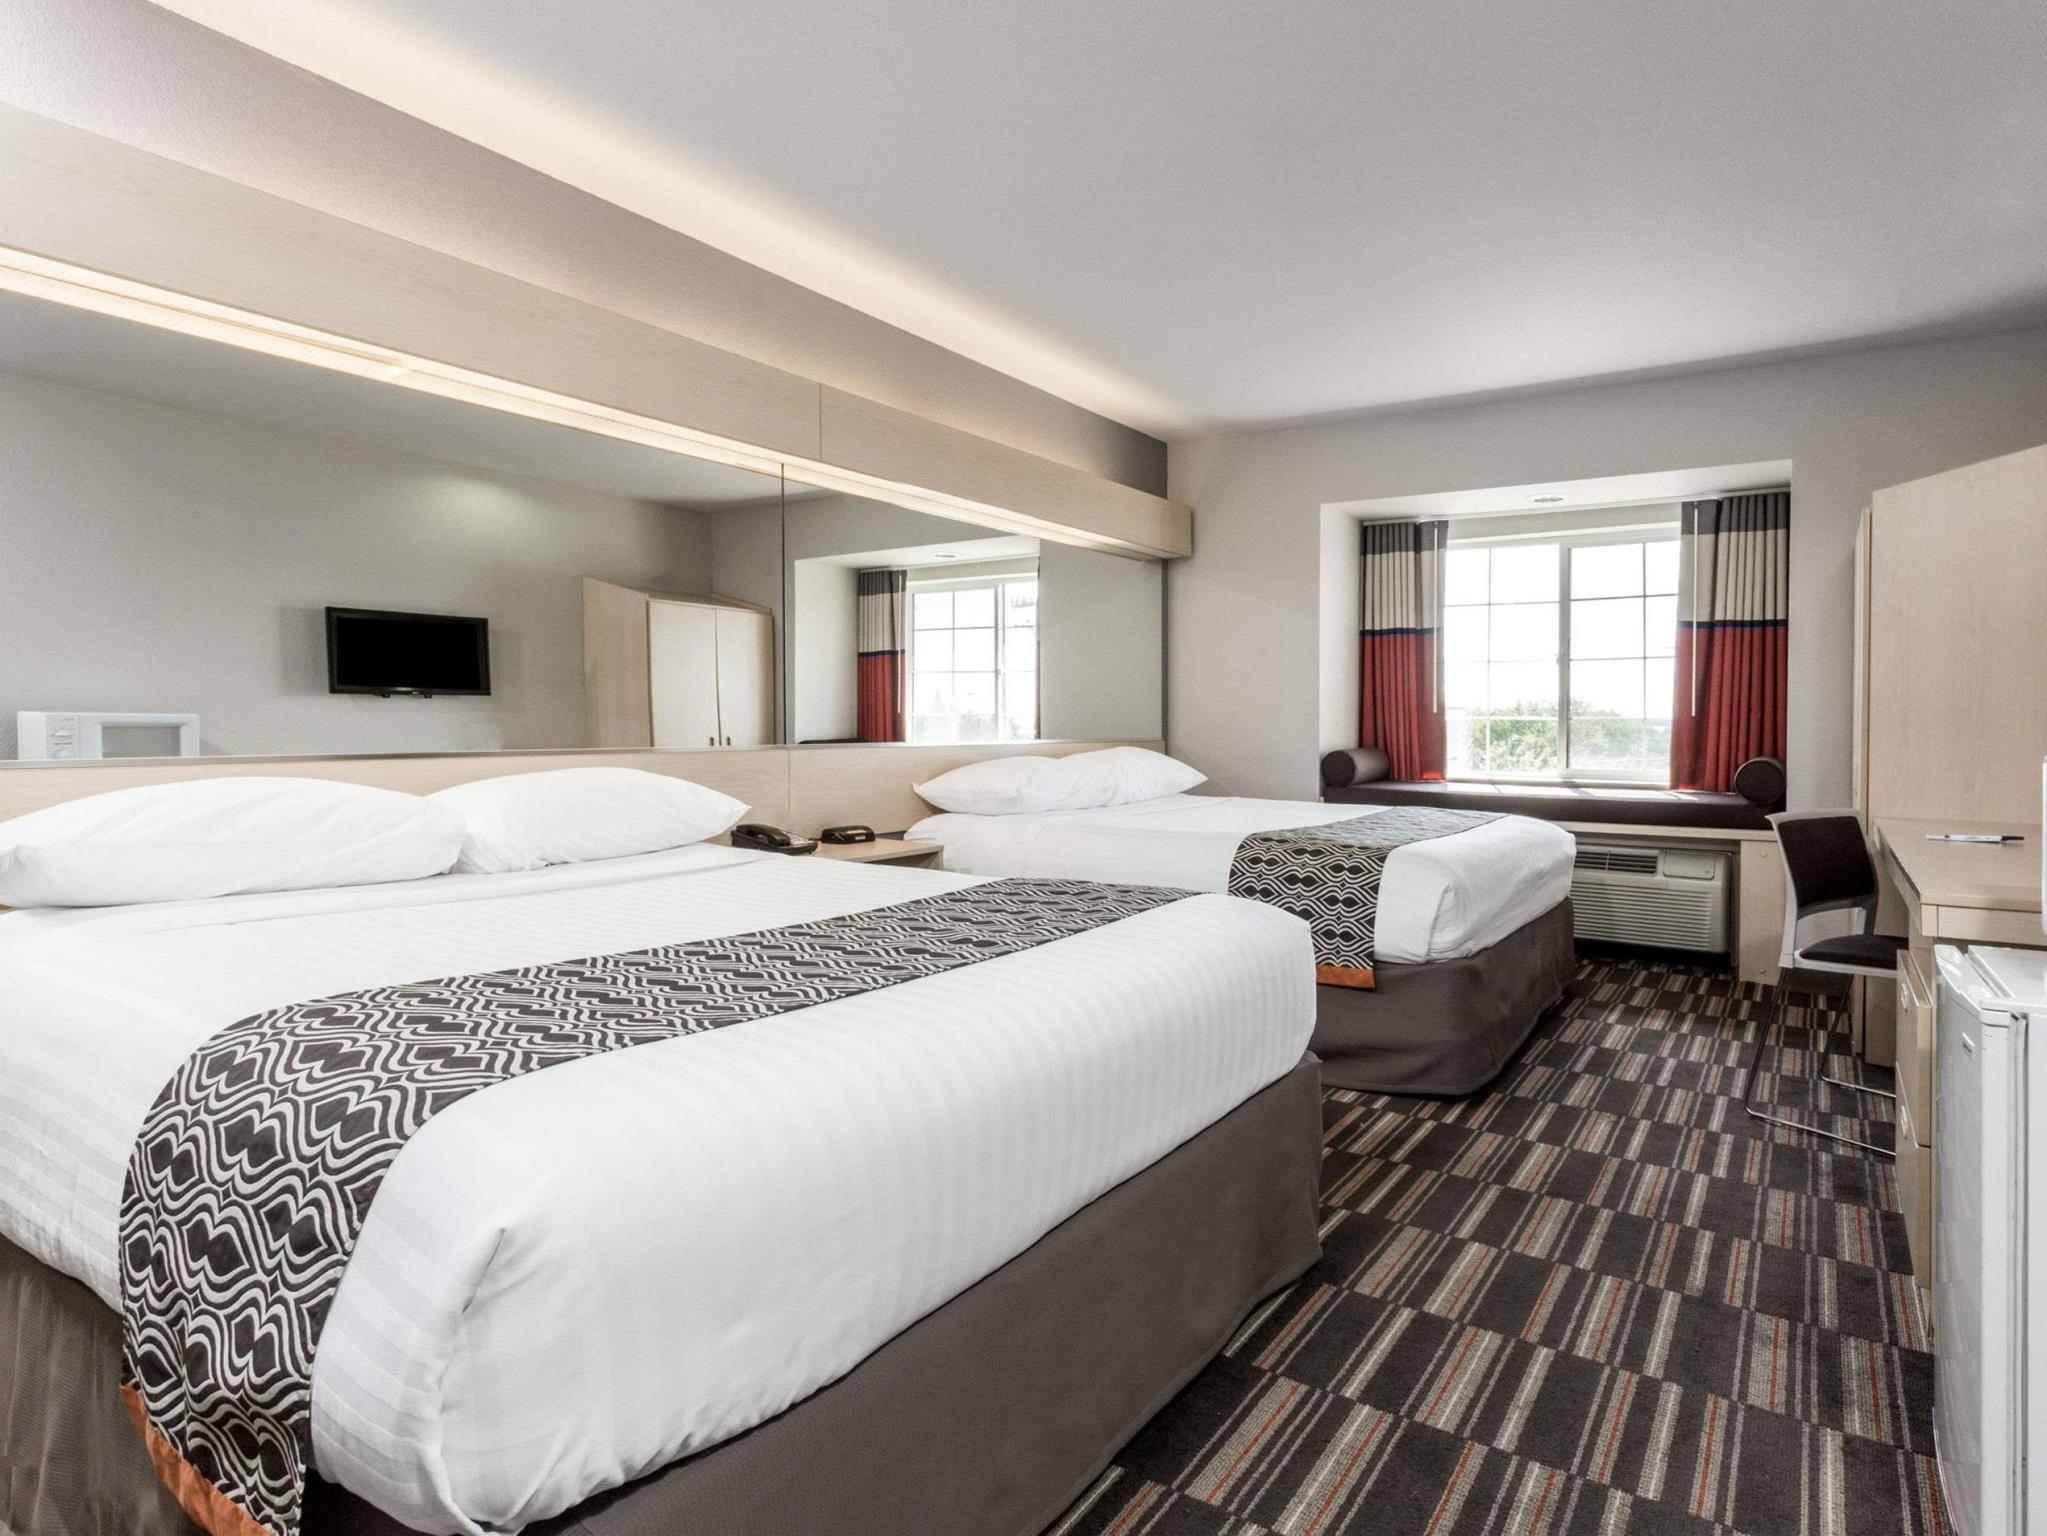 Microtel Inn And Suites By Wyndham Modesto Ceres